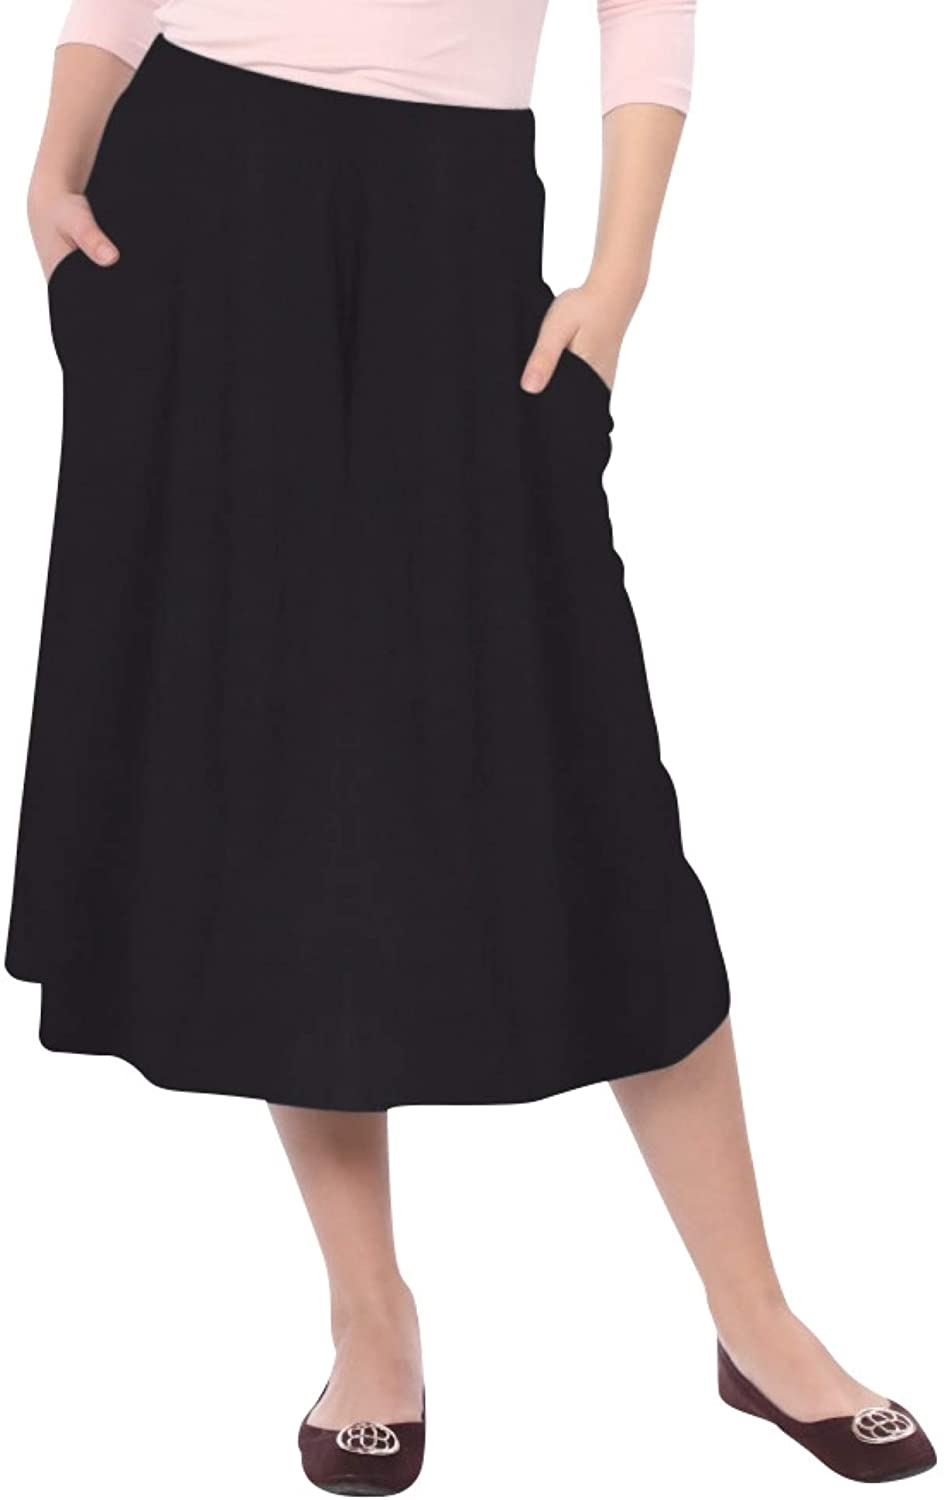 Kosher Casual Women's Modest Lightweight Mid-Calf A-Line Skirt with On Seam Pockets